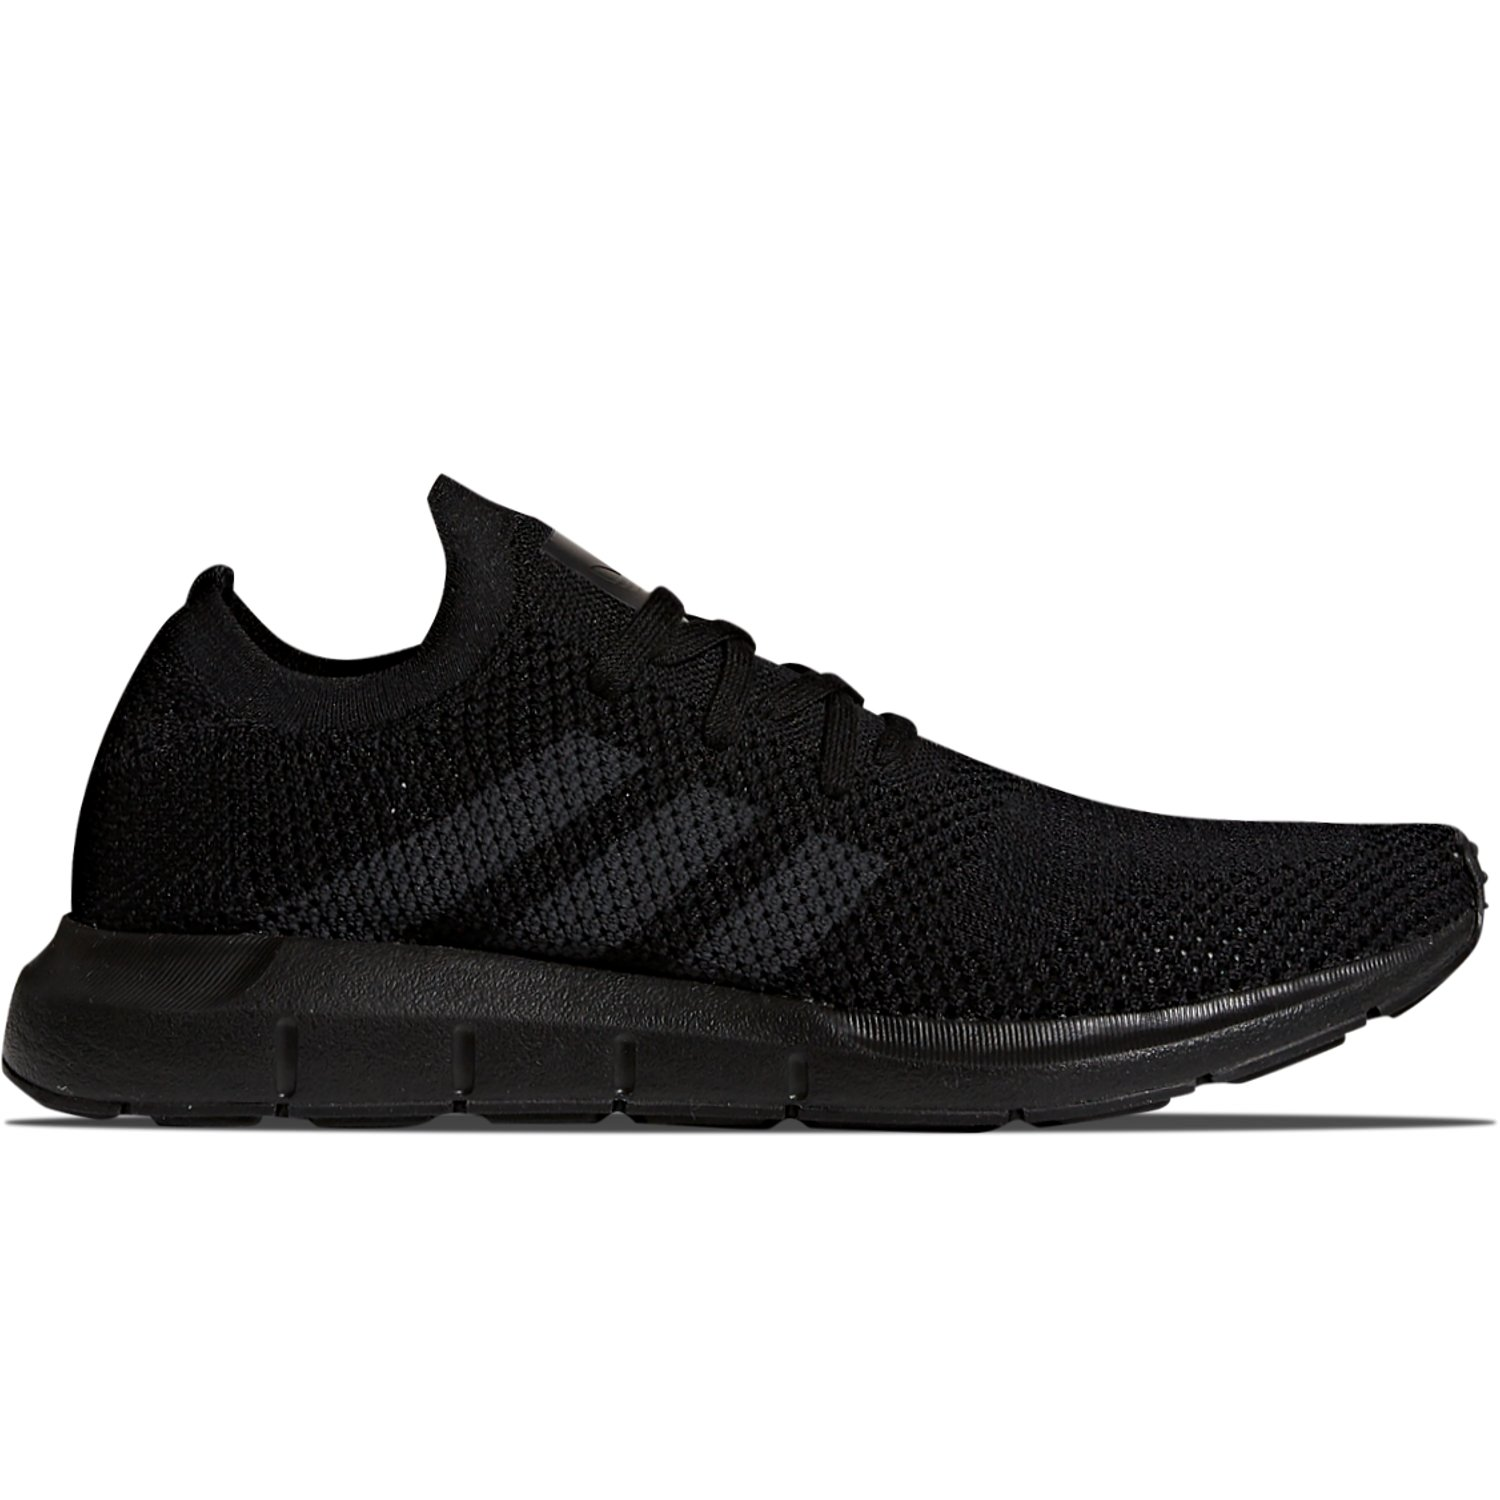 Buty adidas Originals Swift Run Primeknit CQ2893 CZARNY